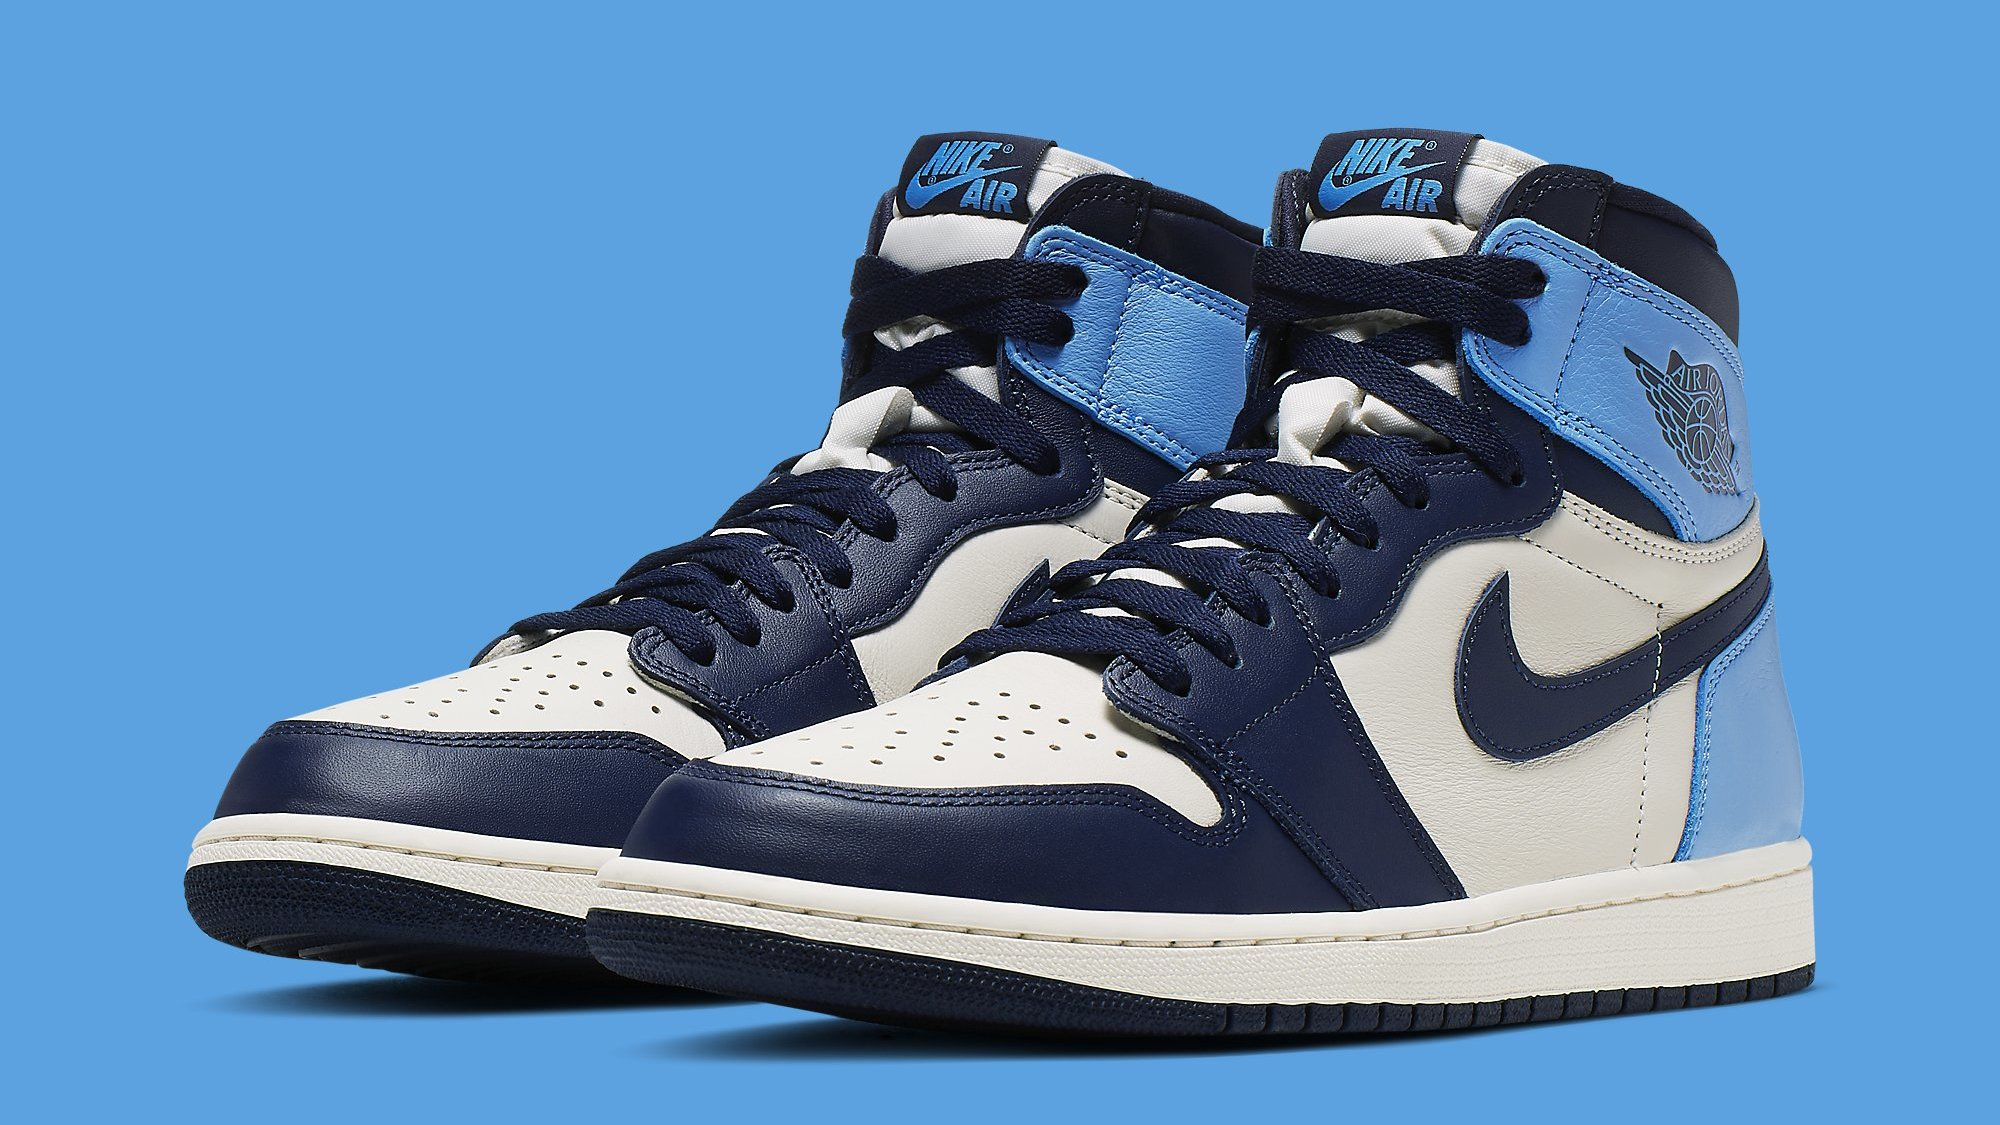 Air Jordan 1 Sail Obsidian University Blue 555088 140 Release Date Sole Collector